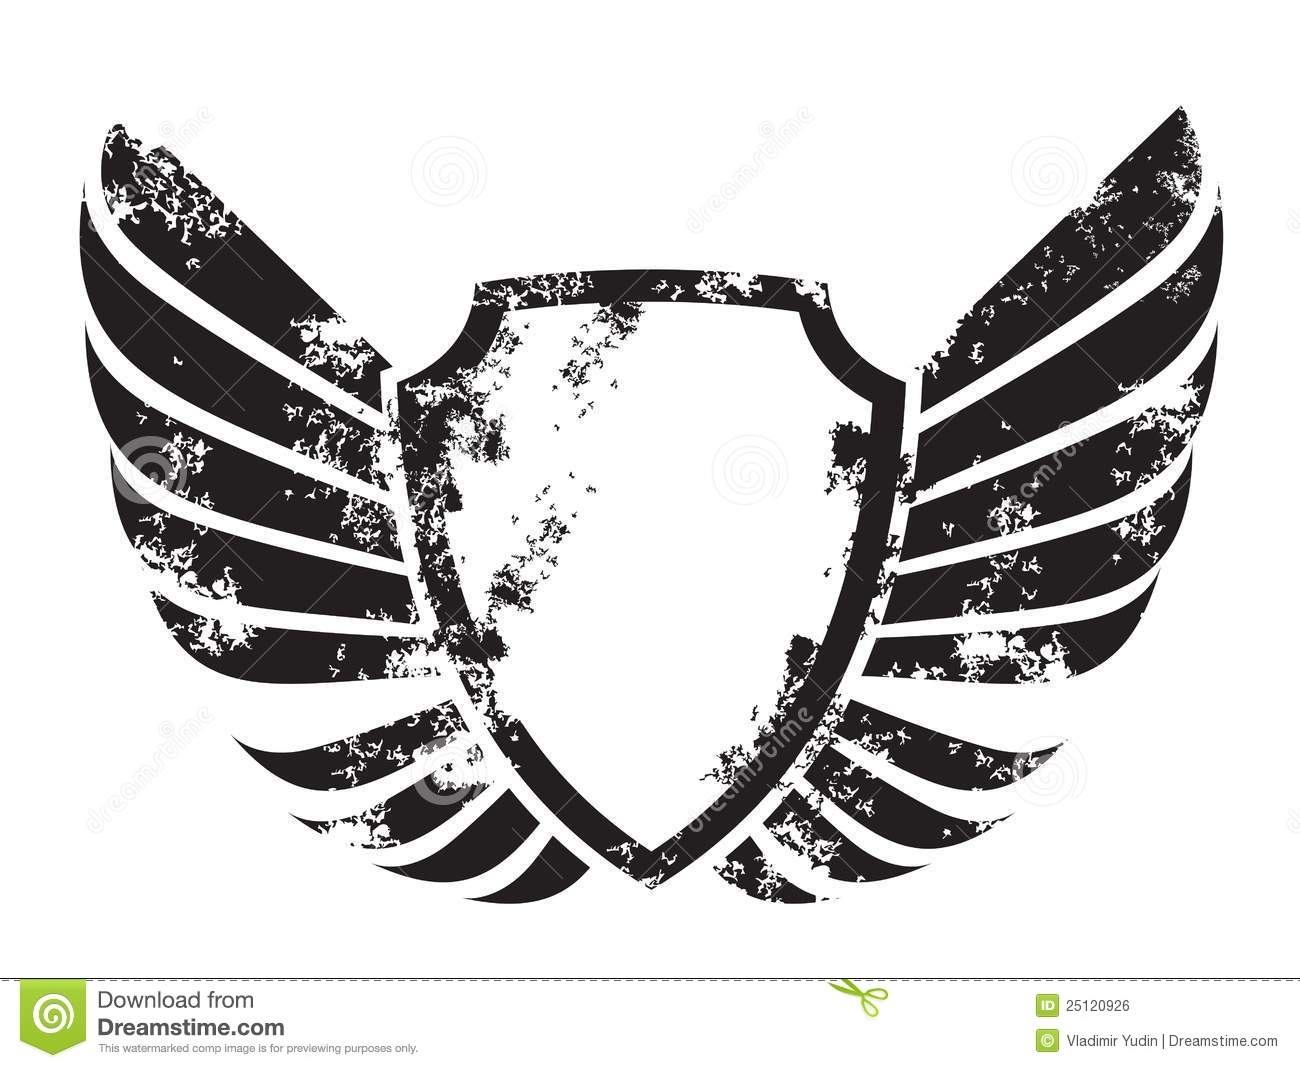 Winged Crest Royalty Free Stock Image - Image: 25120926